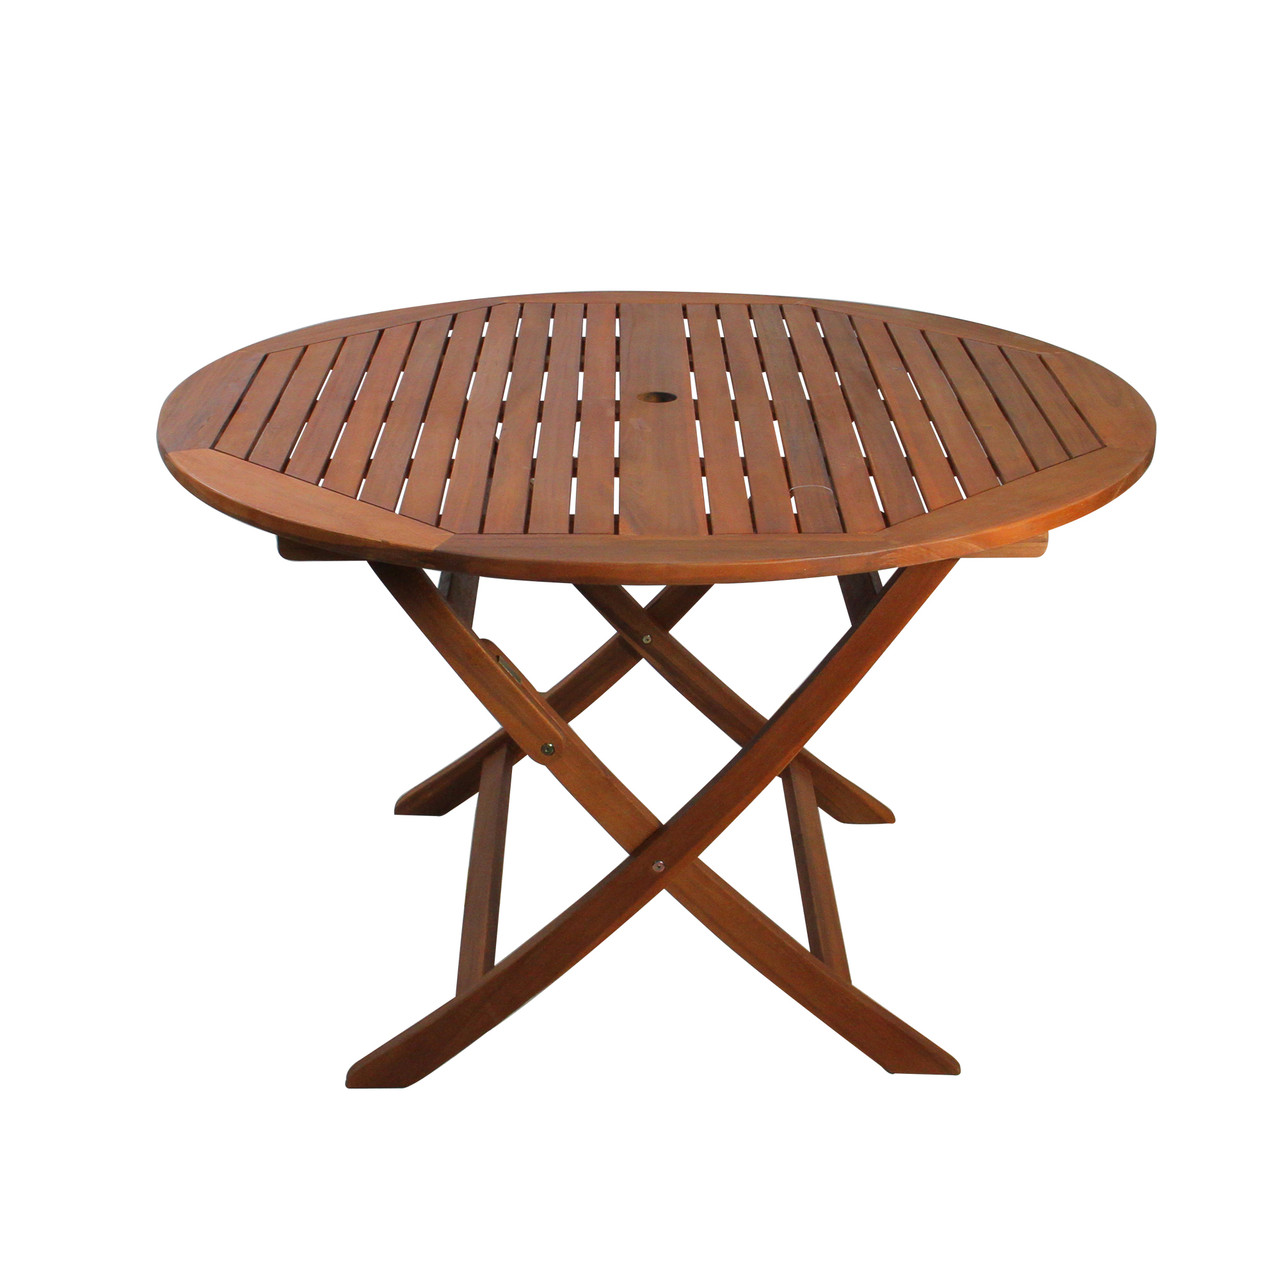 47 brown solid round outdoor acacia wood folding patio dining table